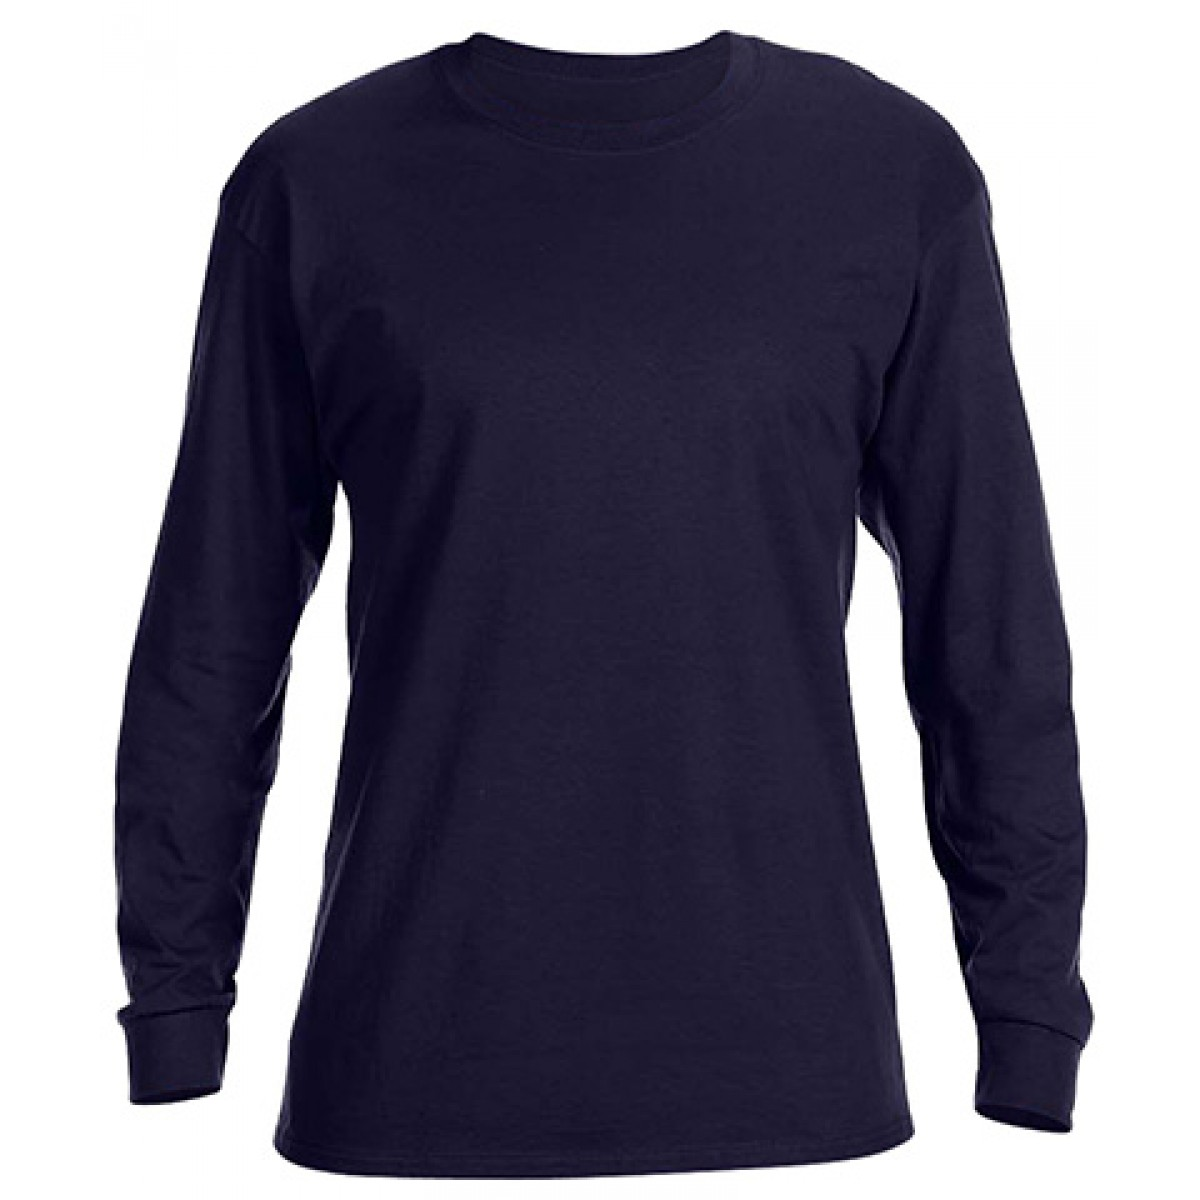 Basic Long Sleeve Crew Neck -Navy-XL